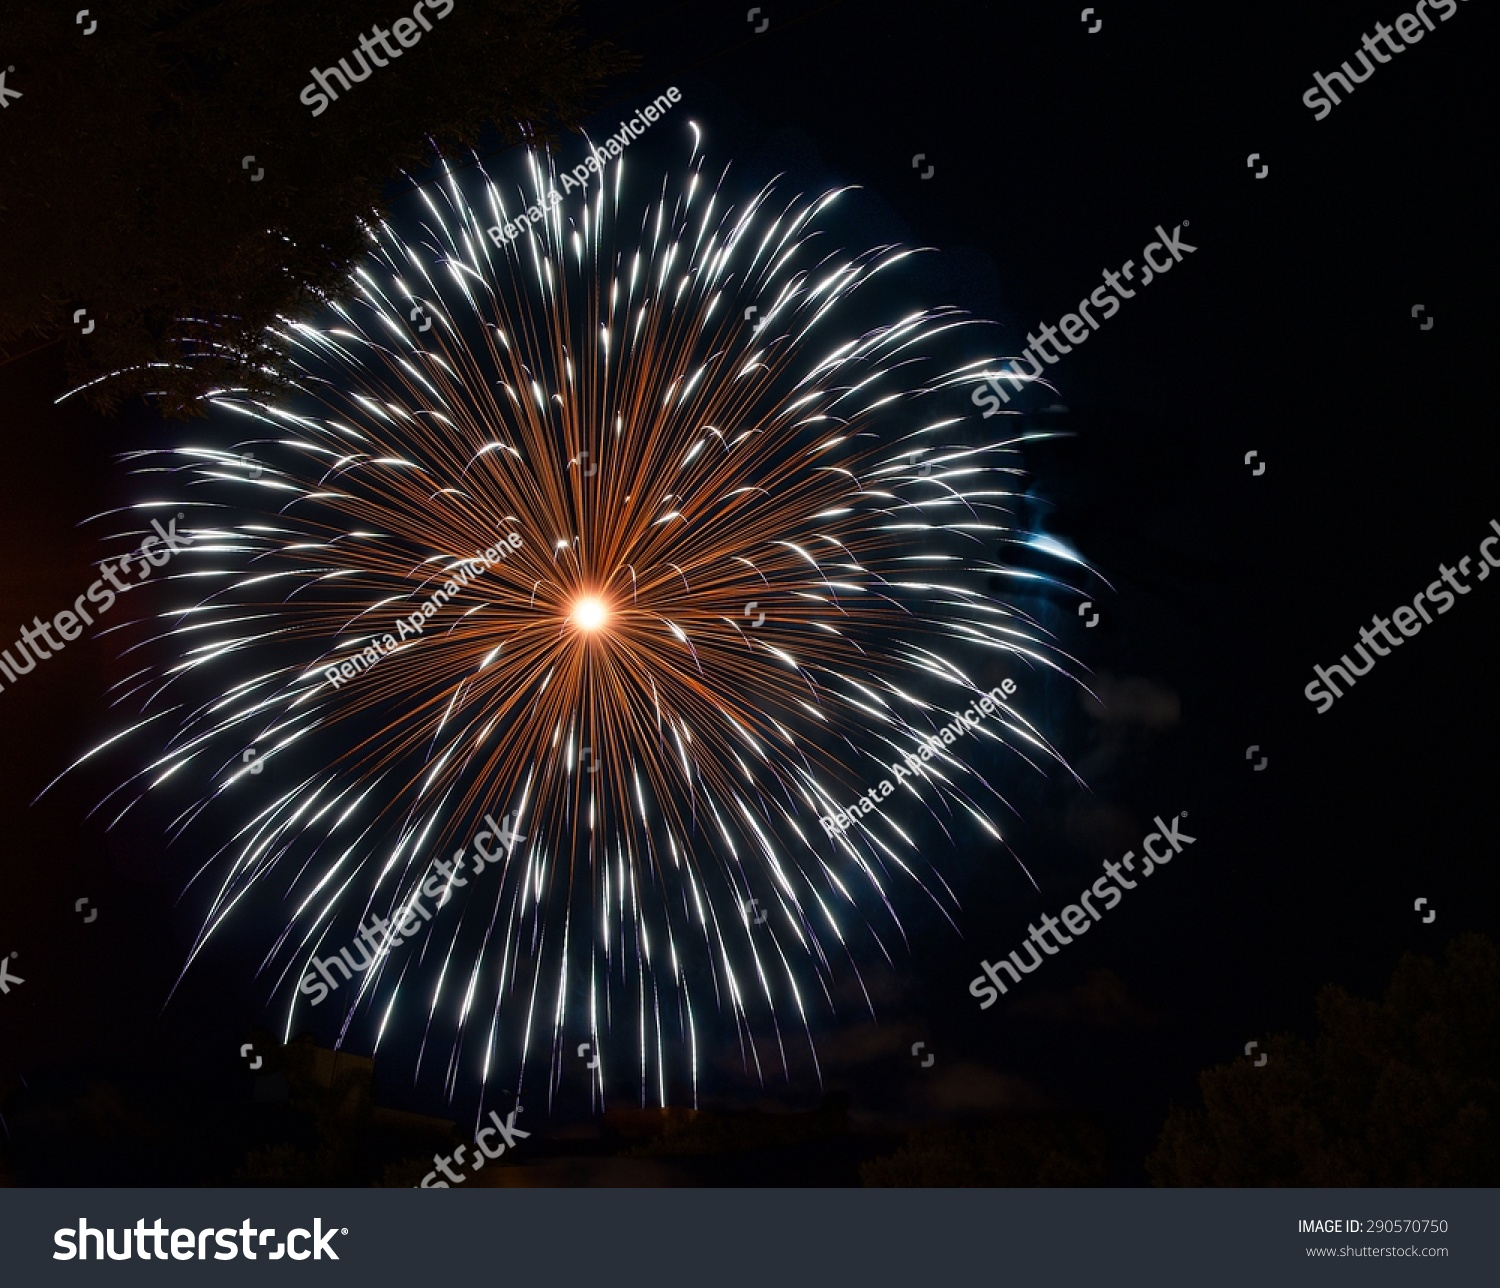 Denver New Years Fireworks6 By Niel4: Fireworks Blue Orange Red Fireworks Isolated Stock Photo